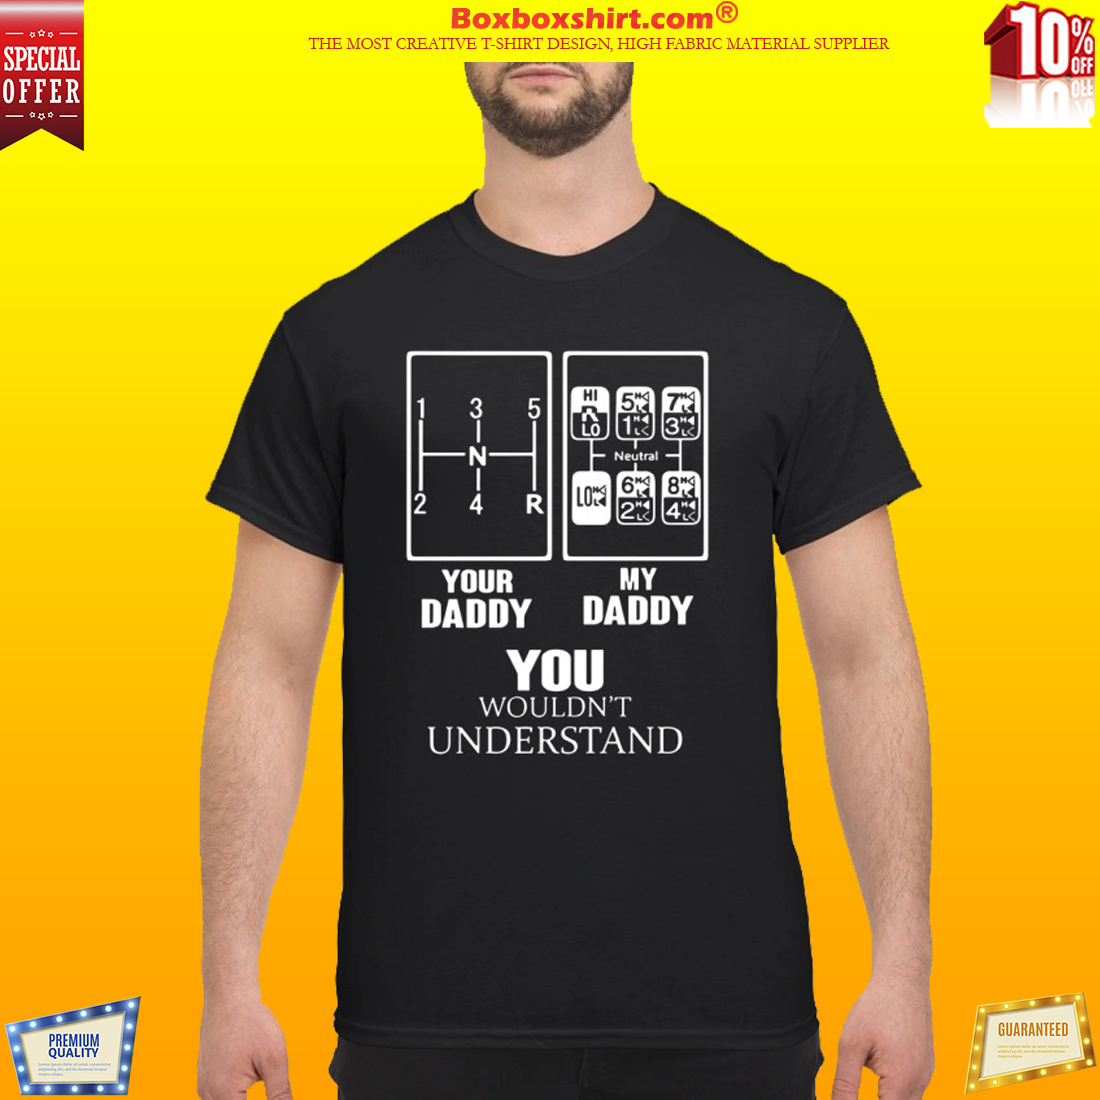 Truck Driver Your Daddy My Daddy You Wouldn't Understand shirt